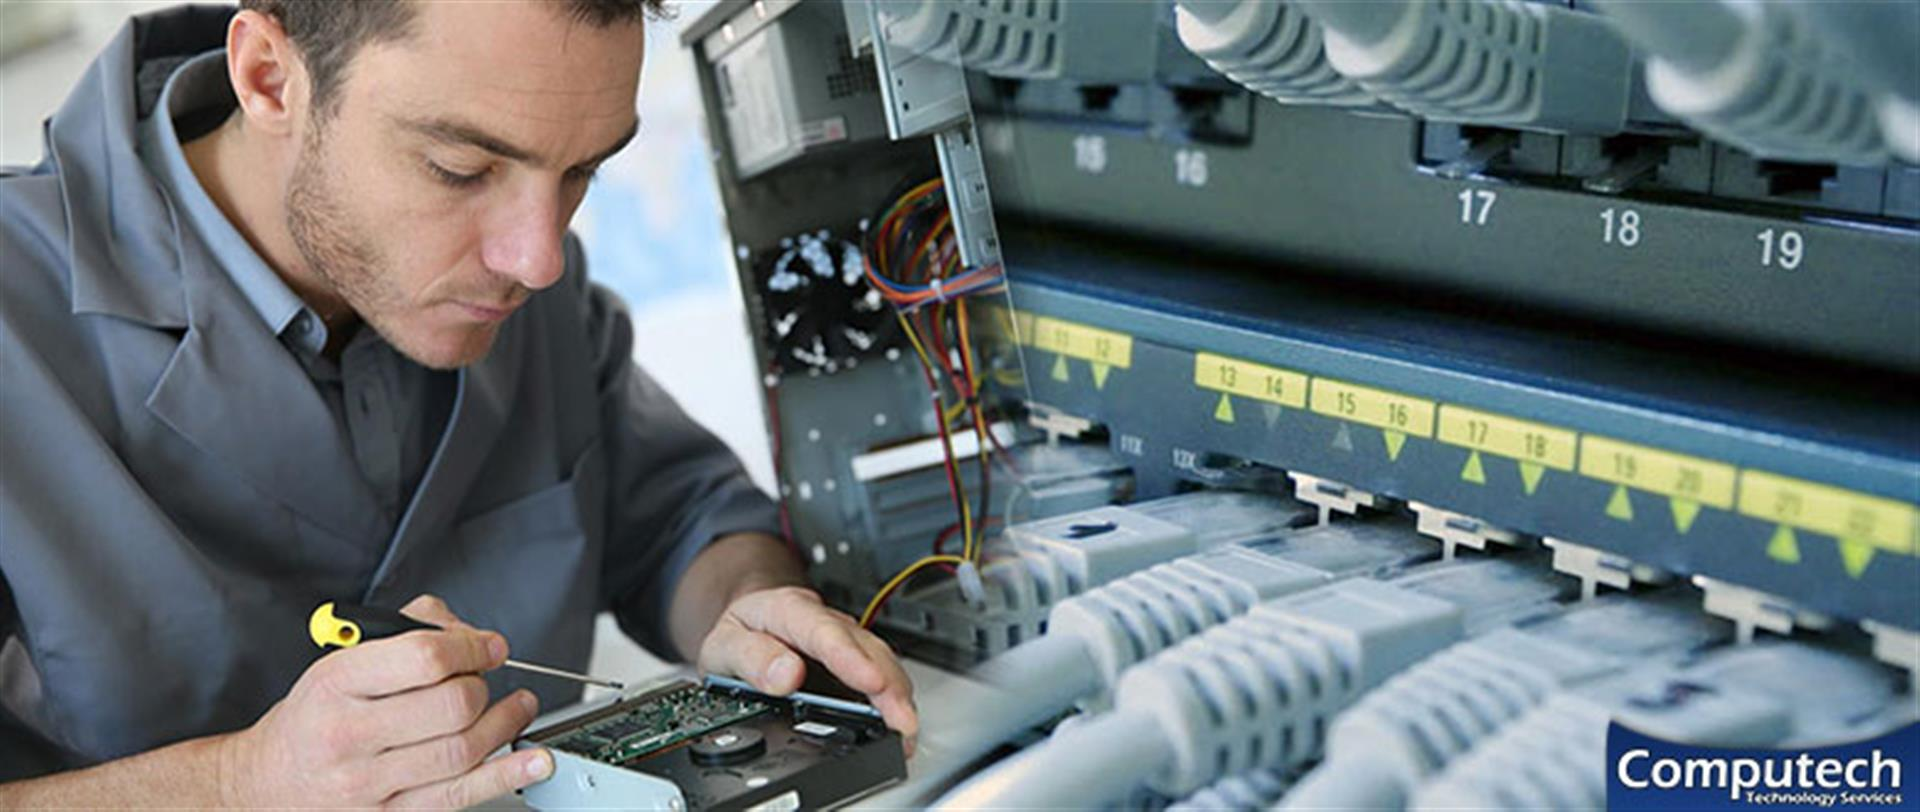 Maynardville Tennessee On-Site Computer PC & Printer Repairs, Network, Voice & Data Cabling Solutions